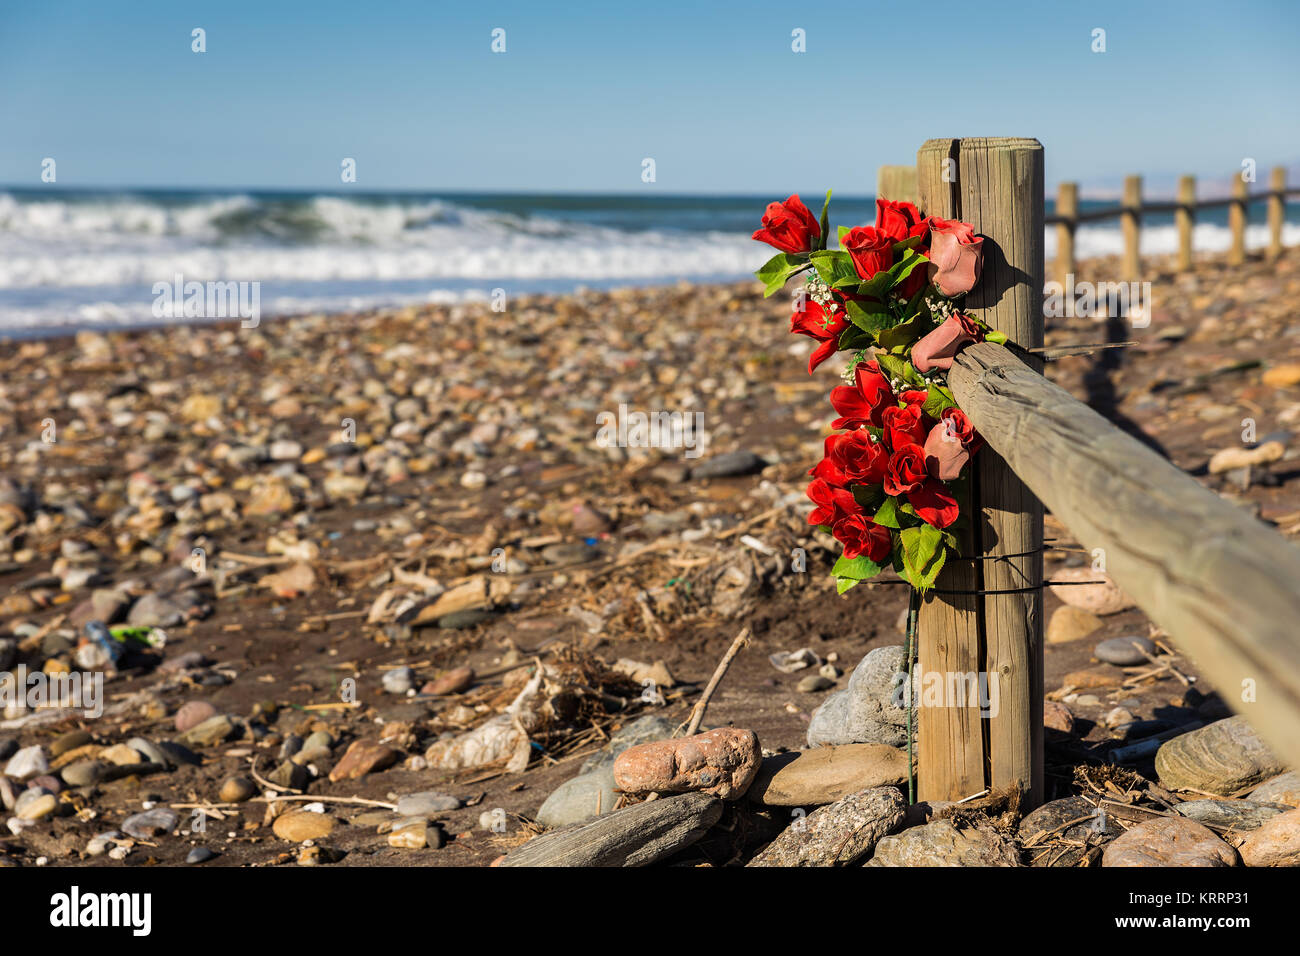 Bouquet of artificial flowers near the seashore. - Stock Image